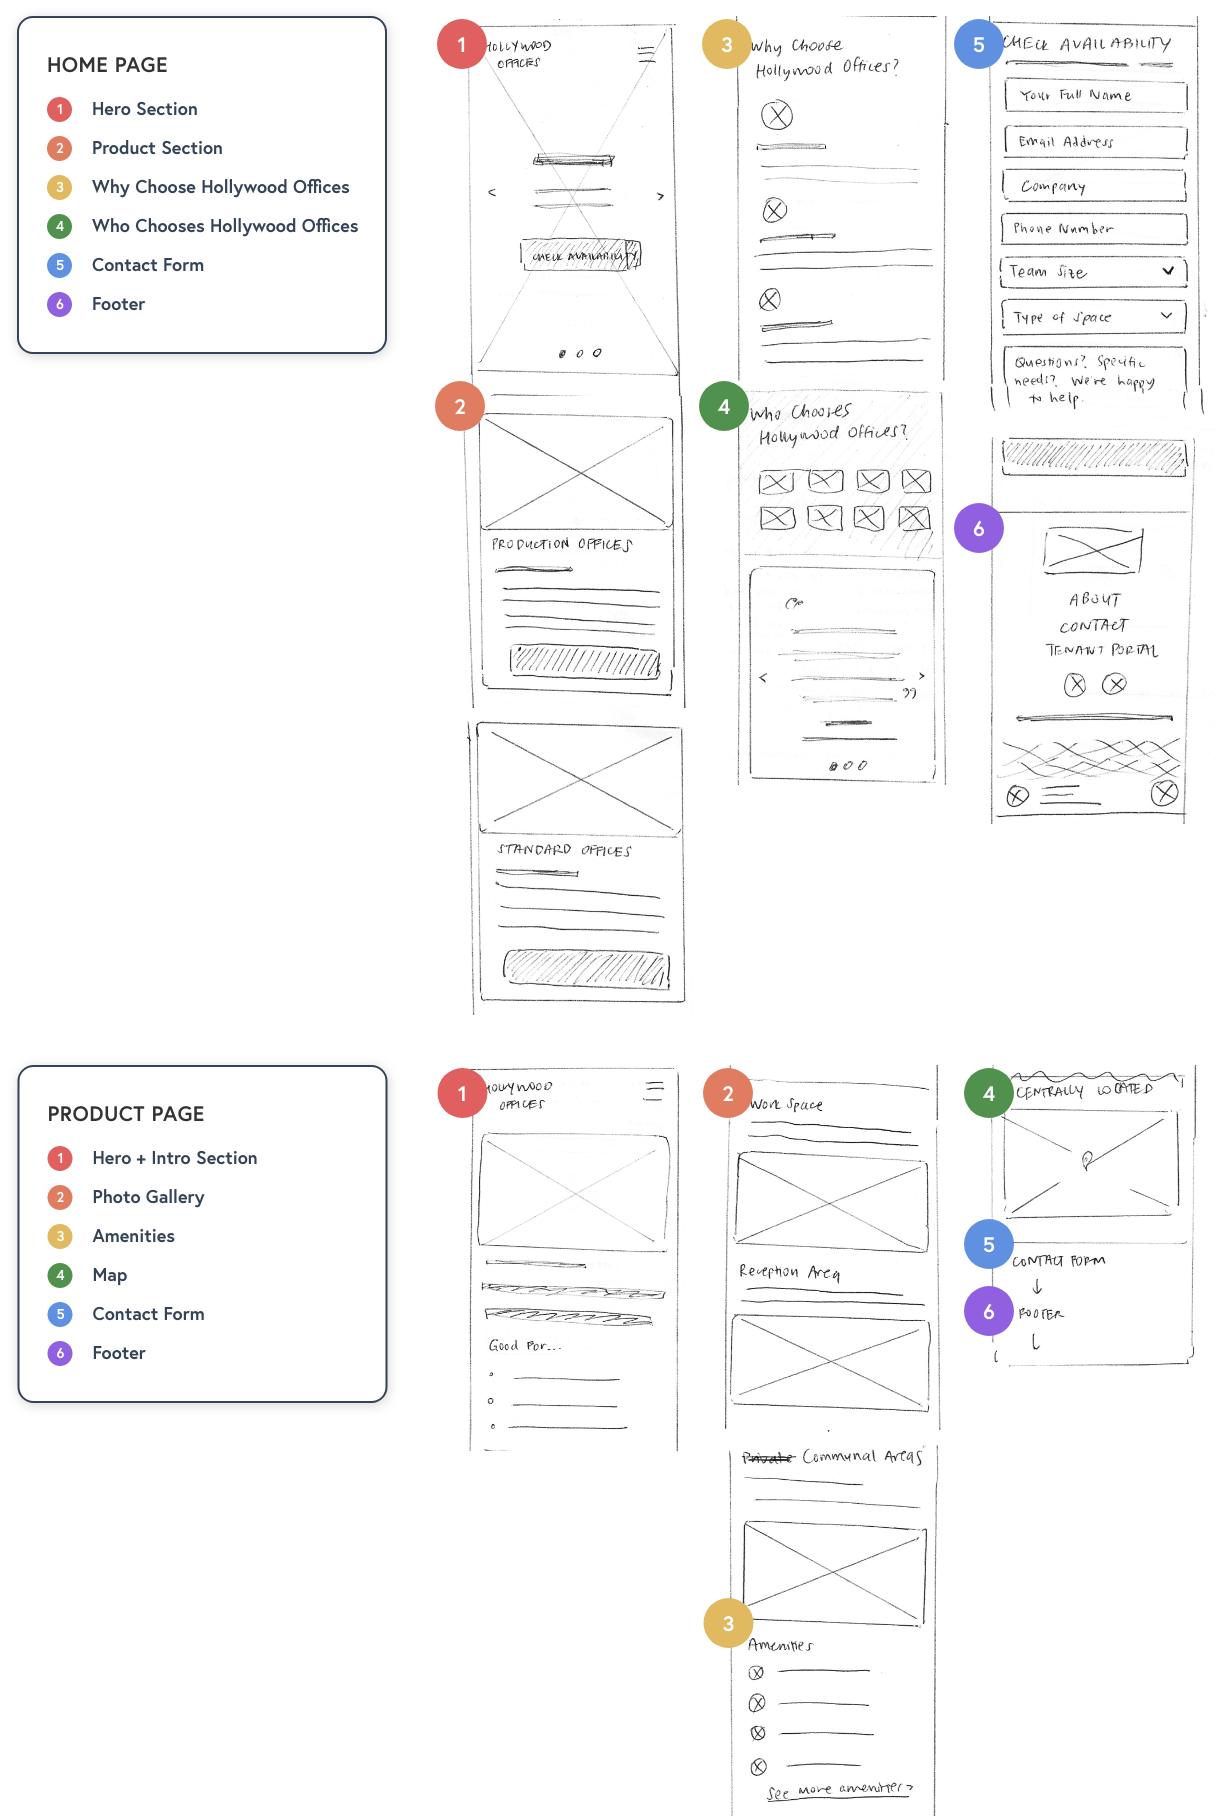 Sketches of the mobile design outline which information will help users most